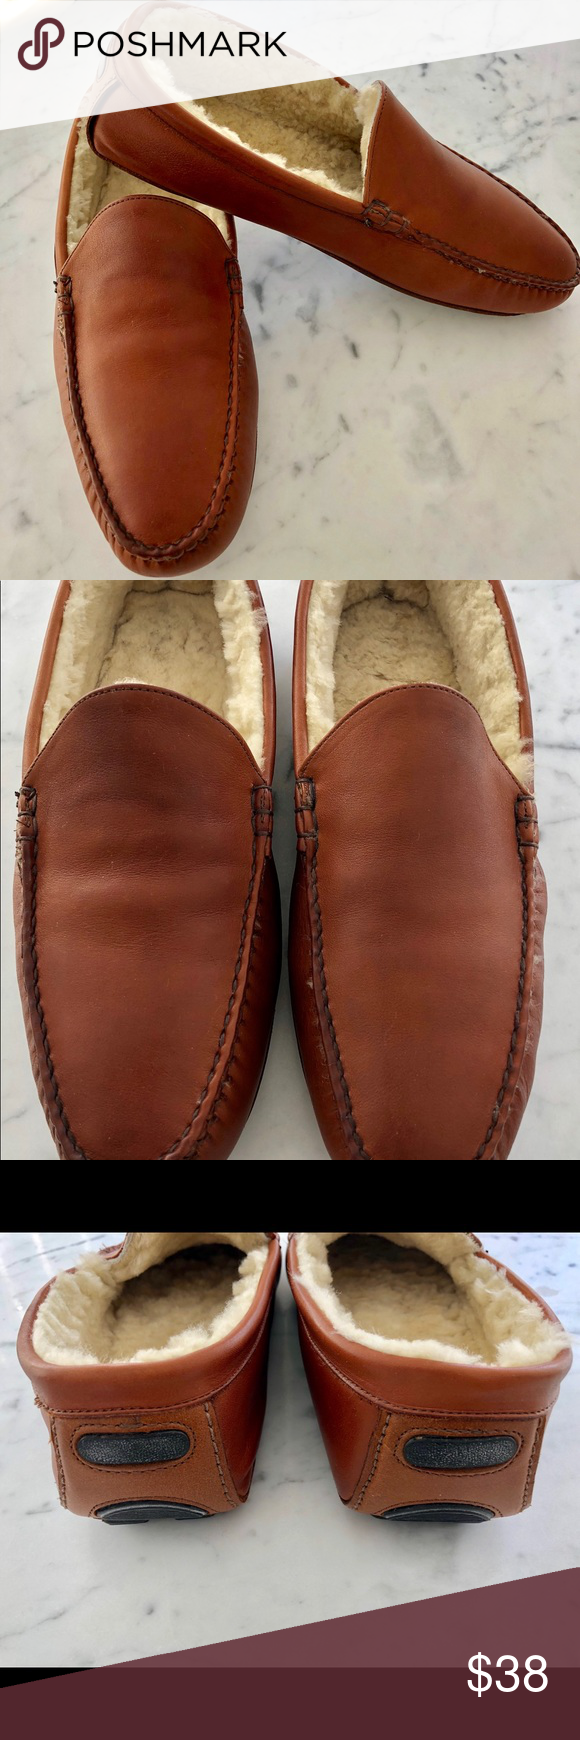 bb8d5c30a0fc Men s leather fleece lined slippers. Nicely made leather driving slippers  with shearling lining. Barely